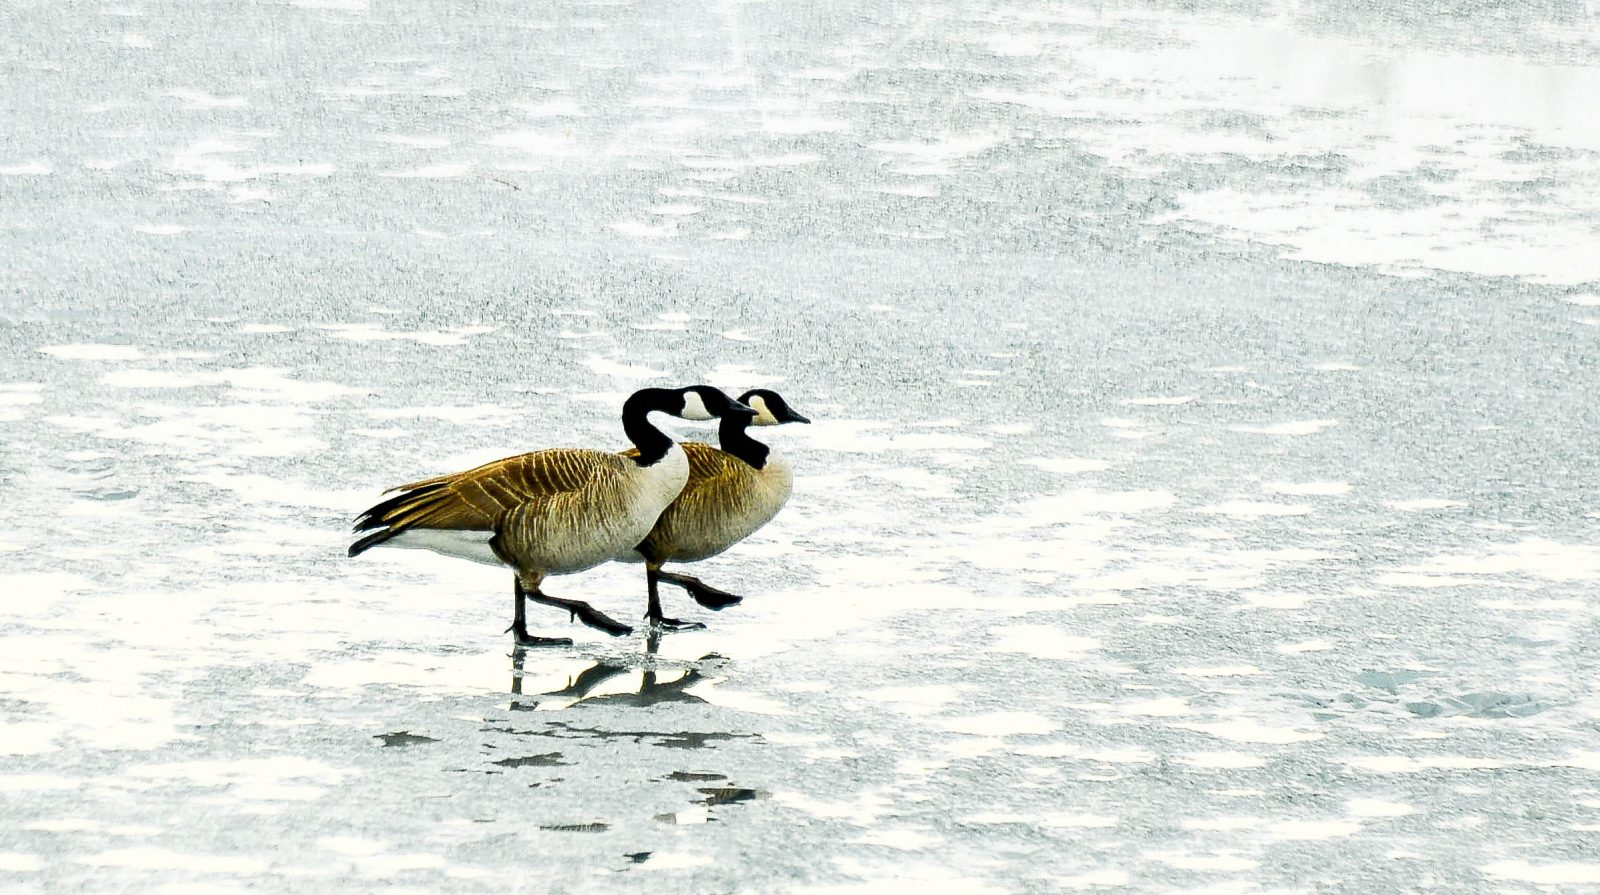 Walking Together on a Wet Frozen Lake